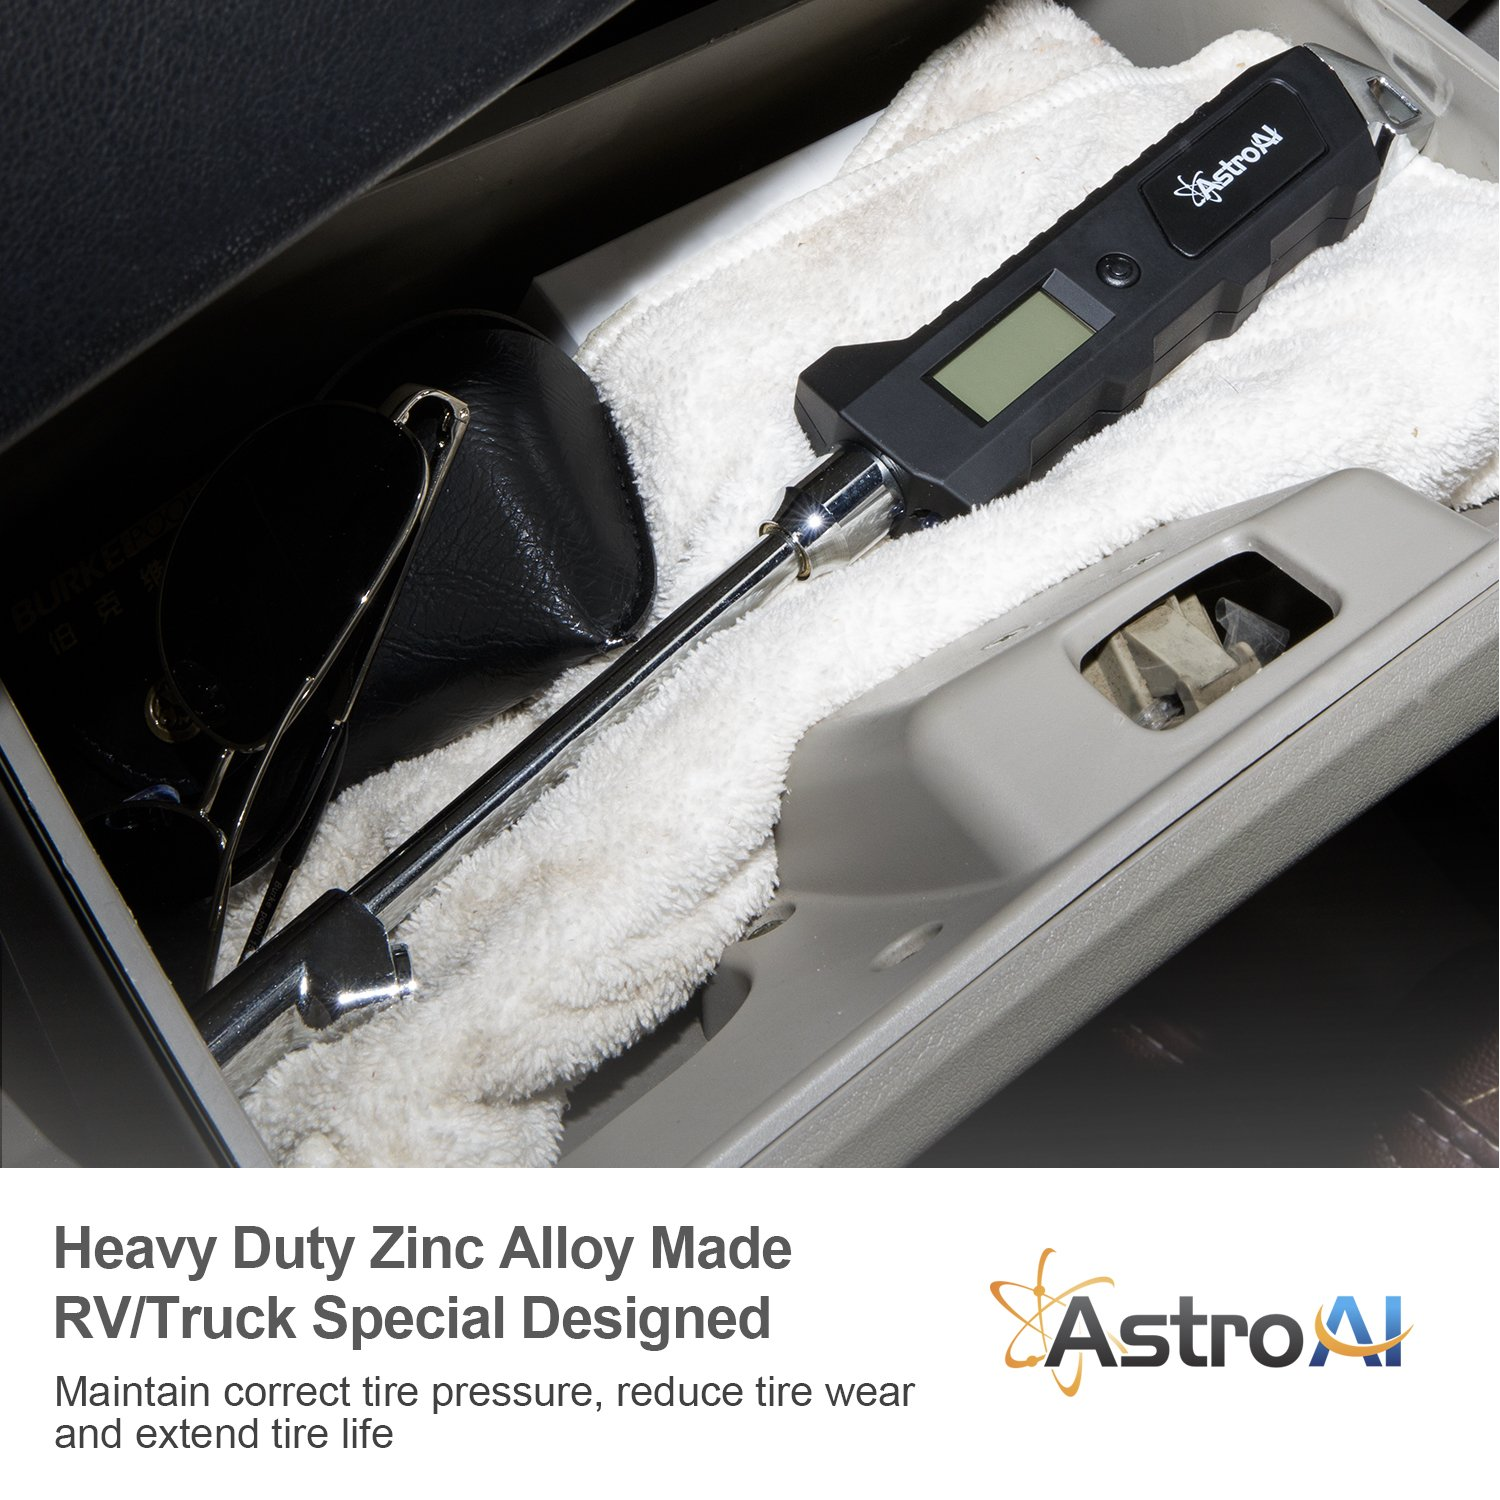 AstroAI ATG230 Digital Tire Pressure Gauge 230 PSI RV Heavy Duty Dual Head Stainless Steel Made for Truck Car with Larger Backlit LCD and Flashlight by AstroAI (Image #4)